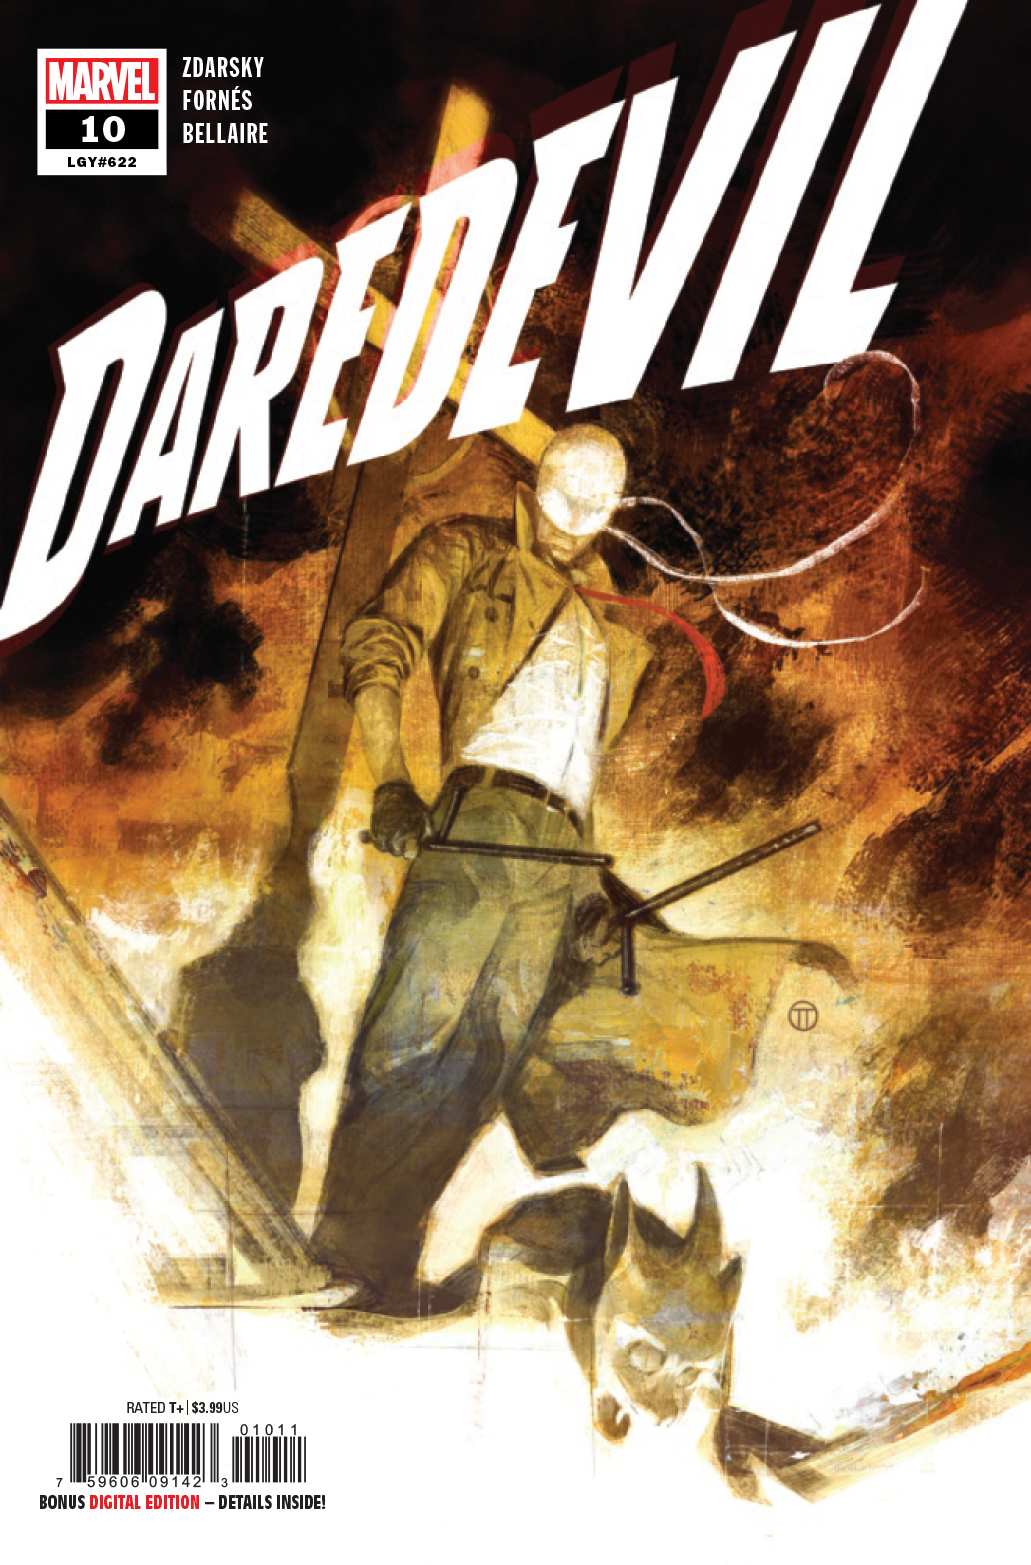 Daredevil #10  is out now.